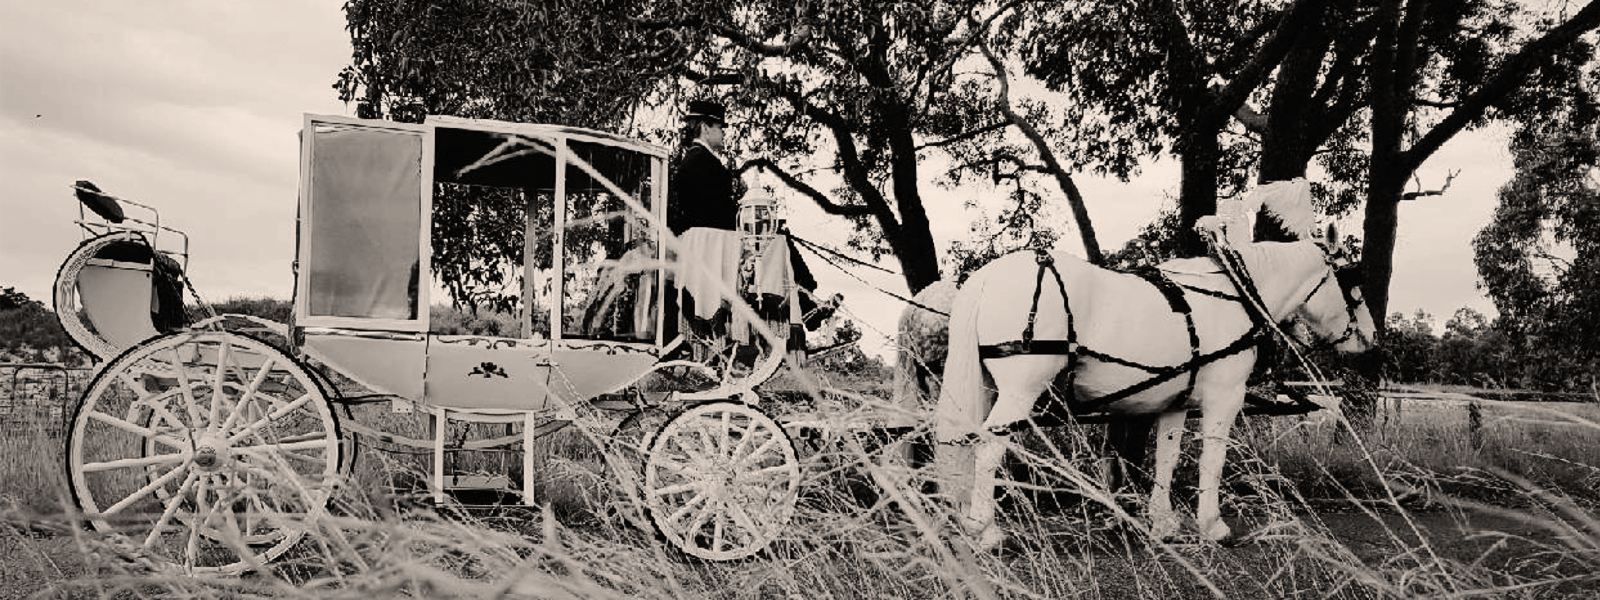 Perth-Horse-&-Carriage-Field